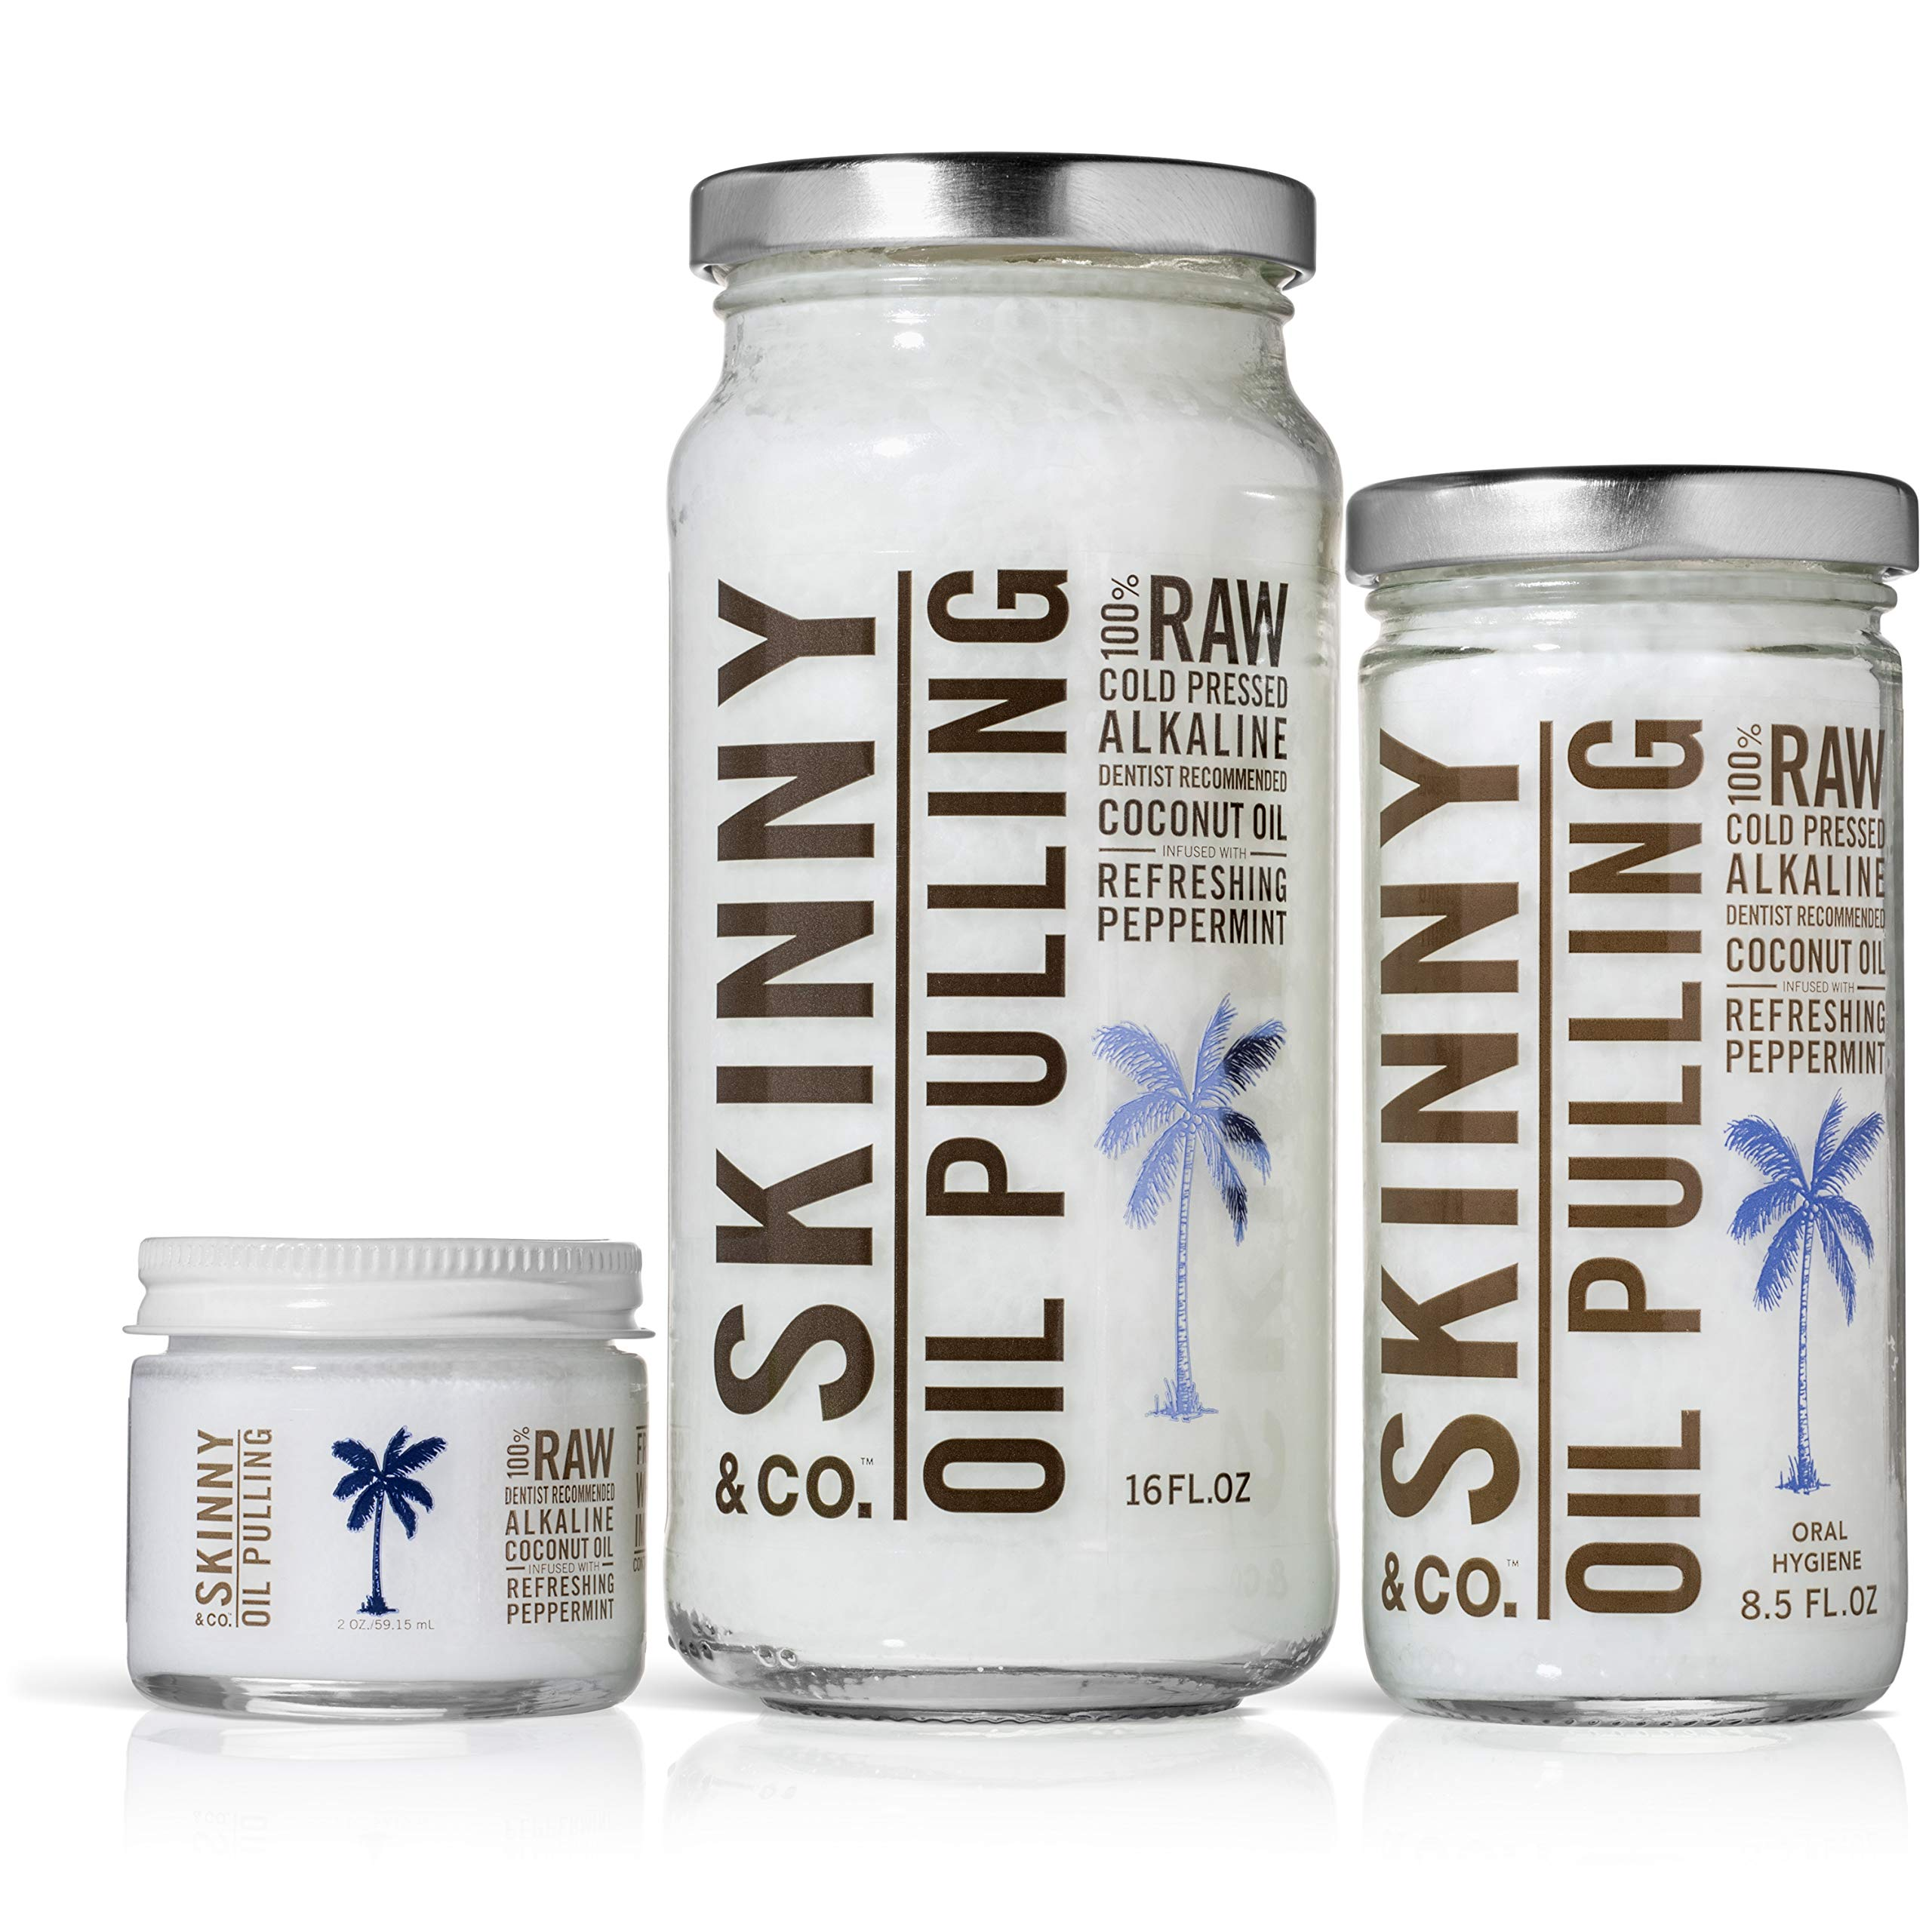 SKINNY and CO. 100% Raw Oil Pulling Peppermint Coconut Oil for Healthier Teeth and Gums (16 Oz) by SKINNY and CO. (Image #4)